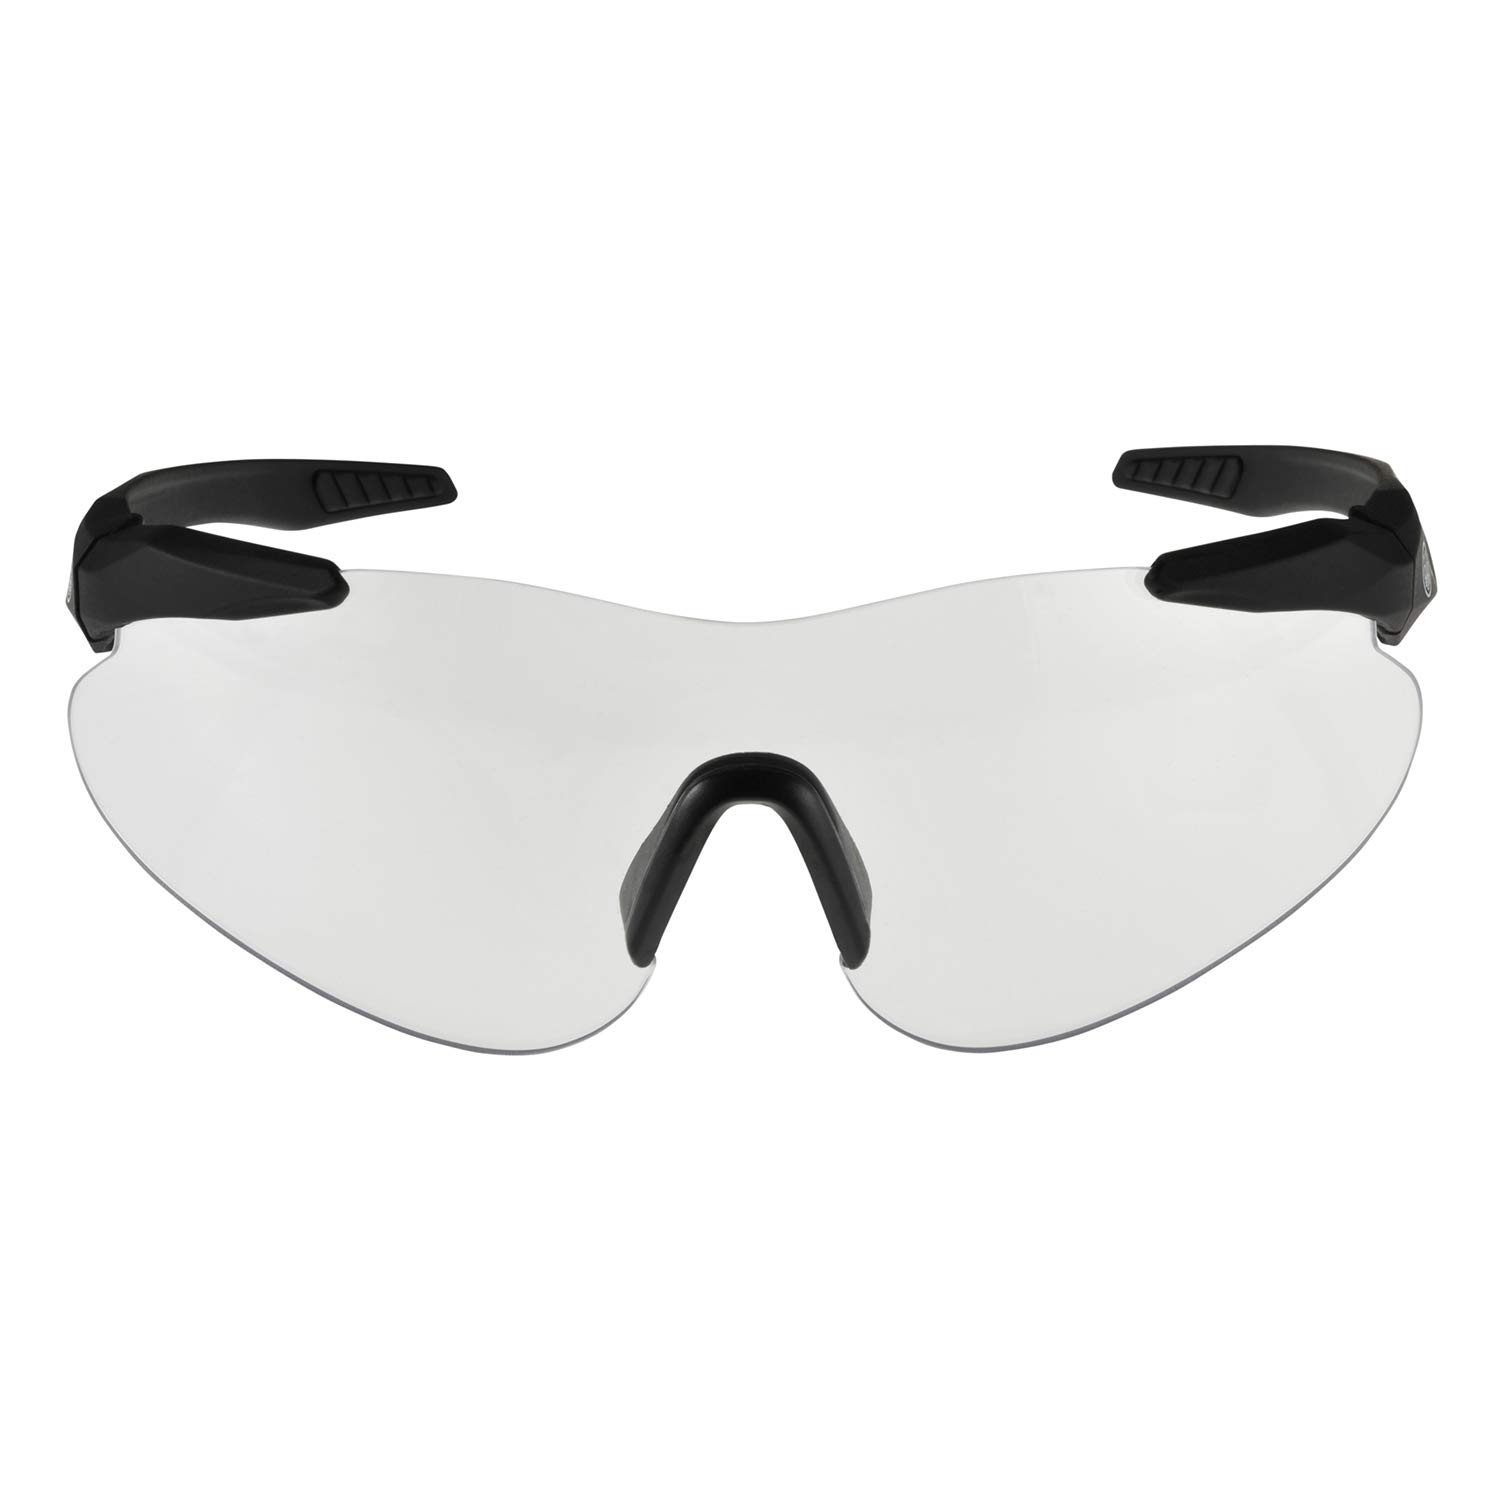 Beretta Shooting Glasses With Policarbonate Injected Lens, Clear by Beretta